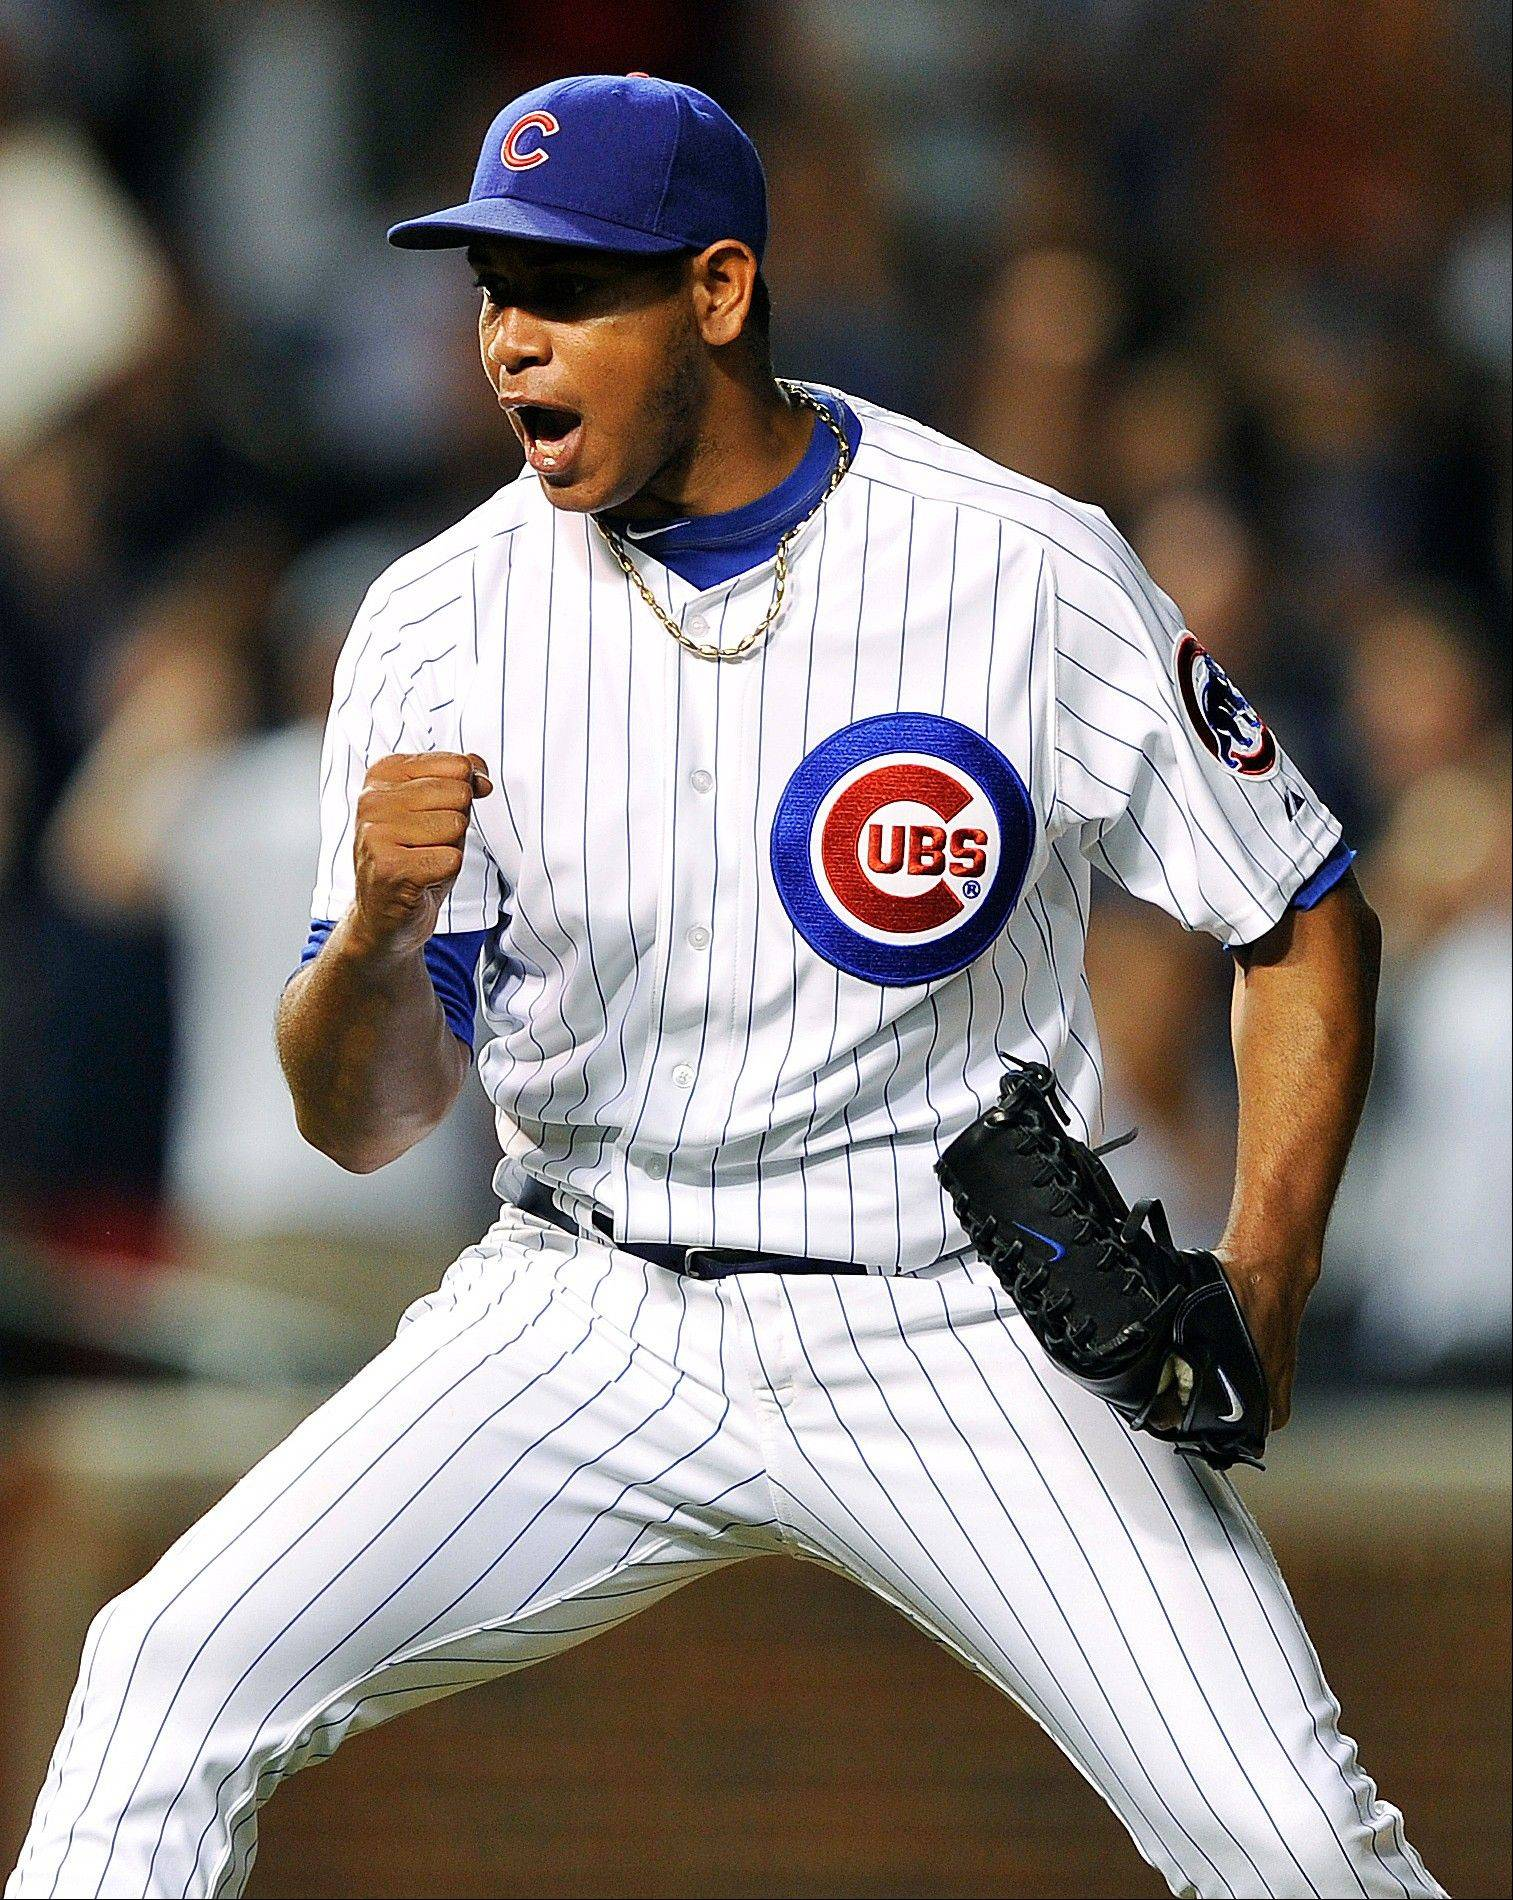 Carlos Marmol celebrates their 5-3 win over the New York Mets after a baseball game, Tuesday, June 26, 2012, in Chicago.